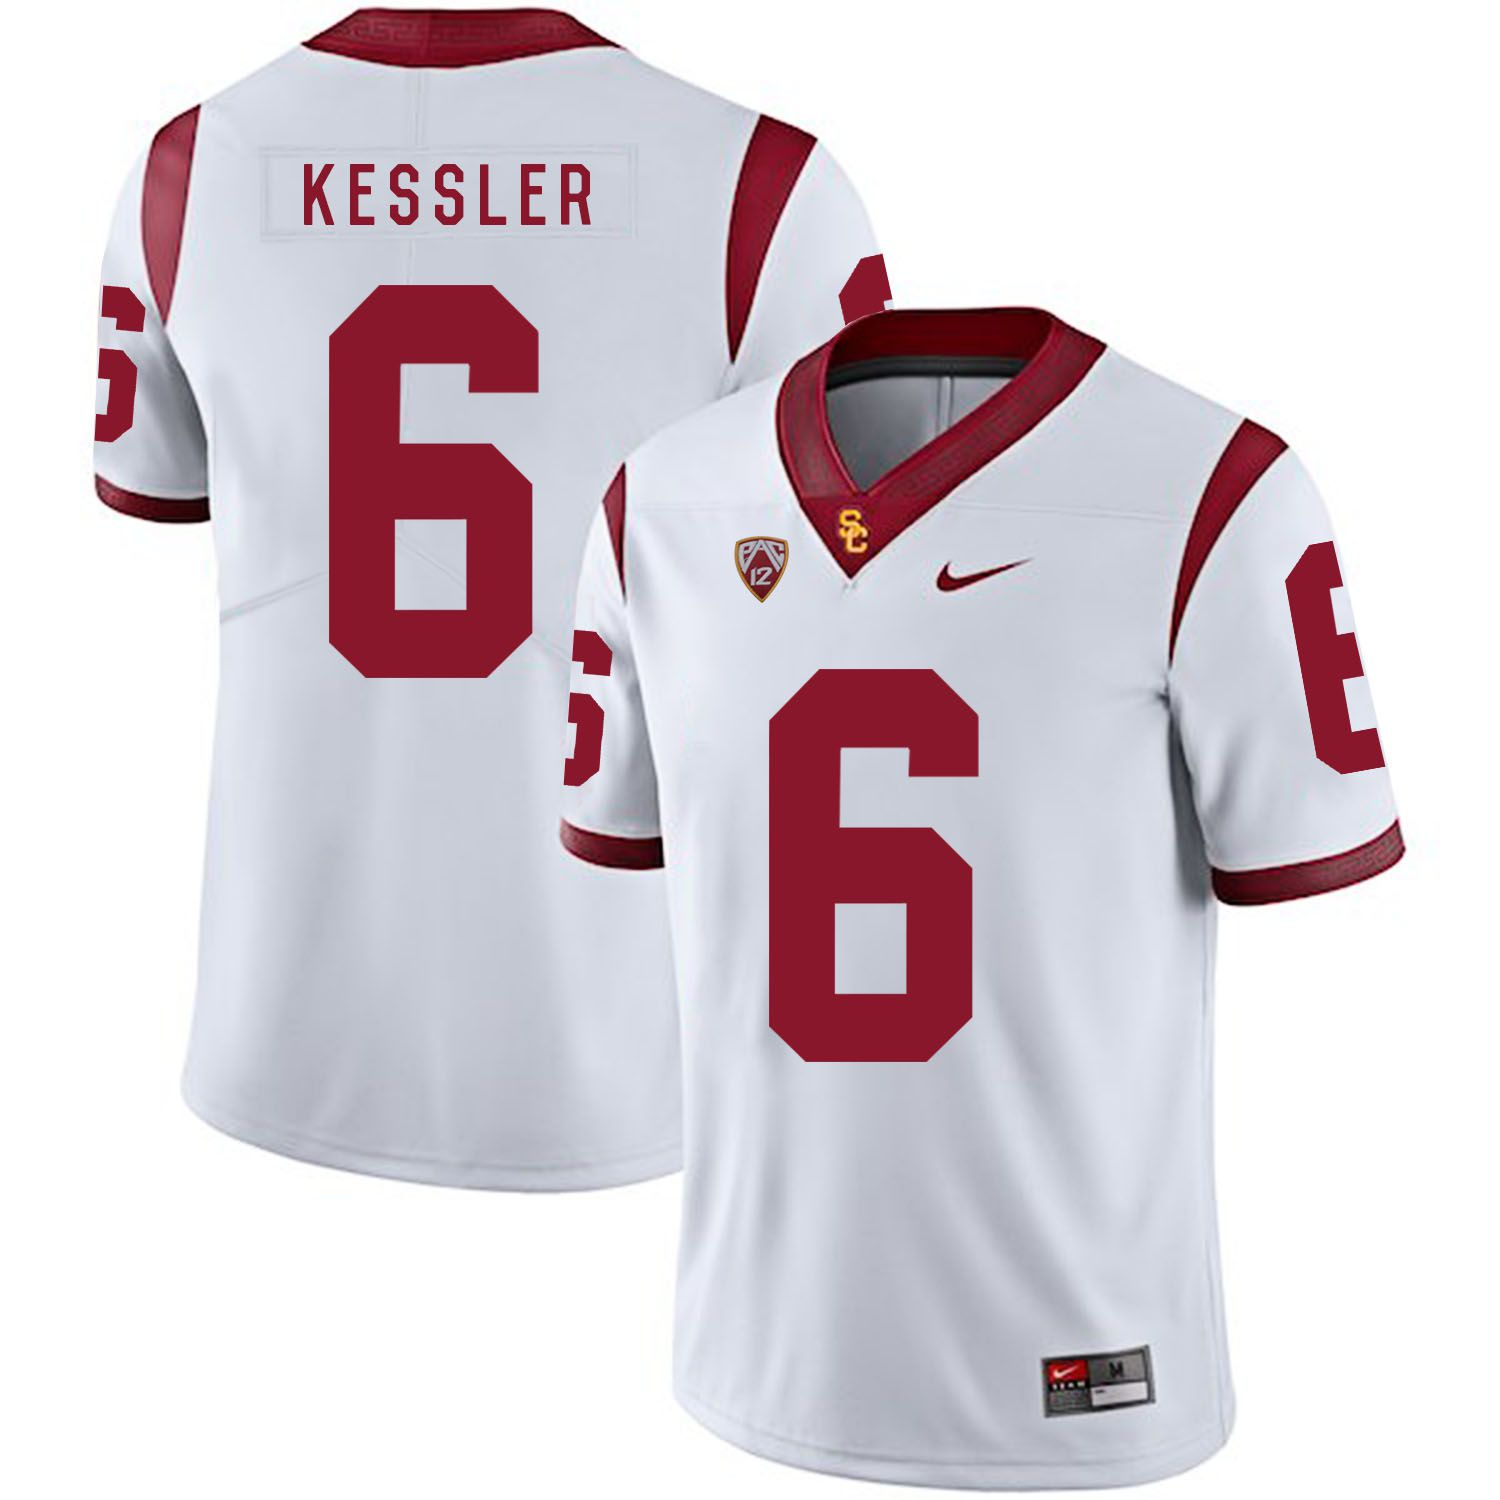 Men USC Trojans 6 Kessler White Customized NCAA Jerseys